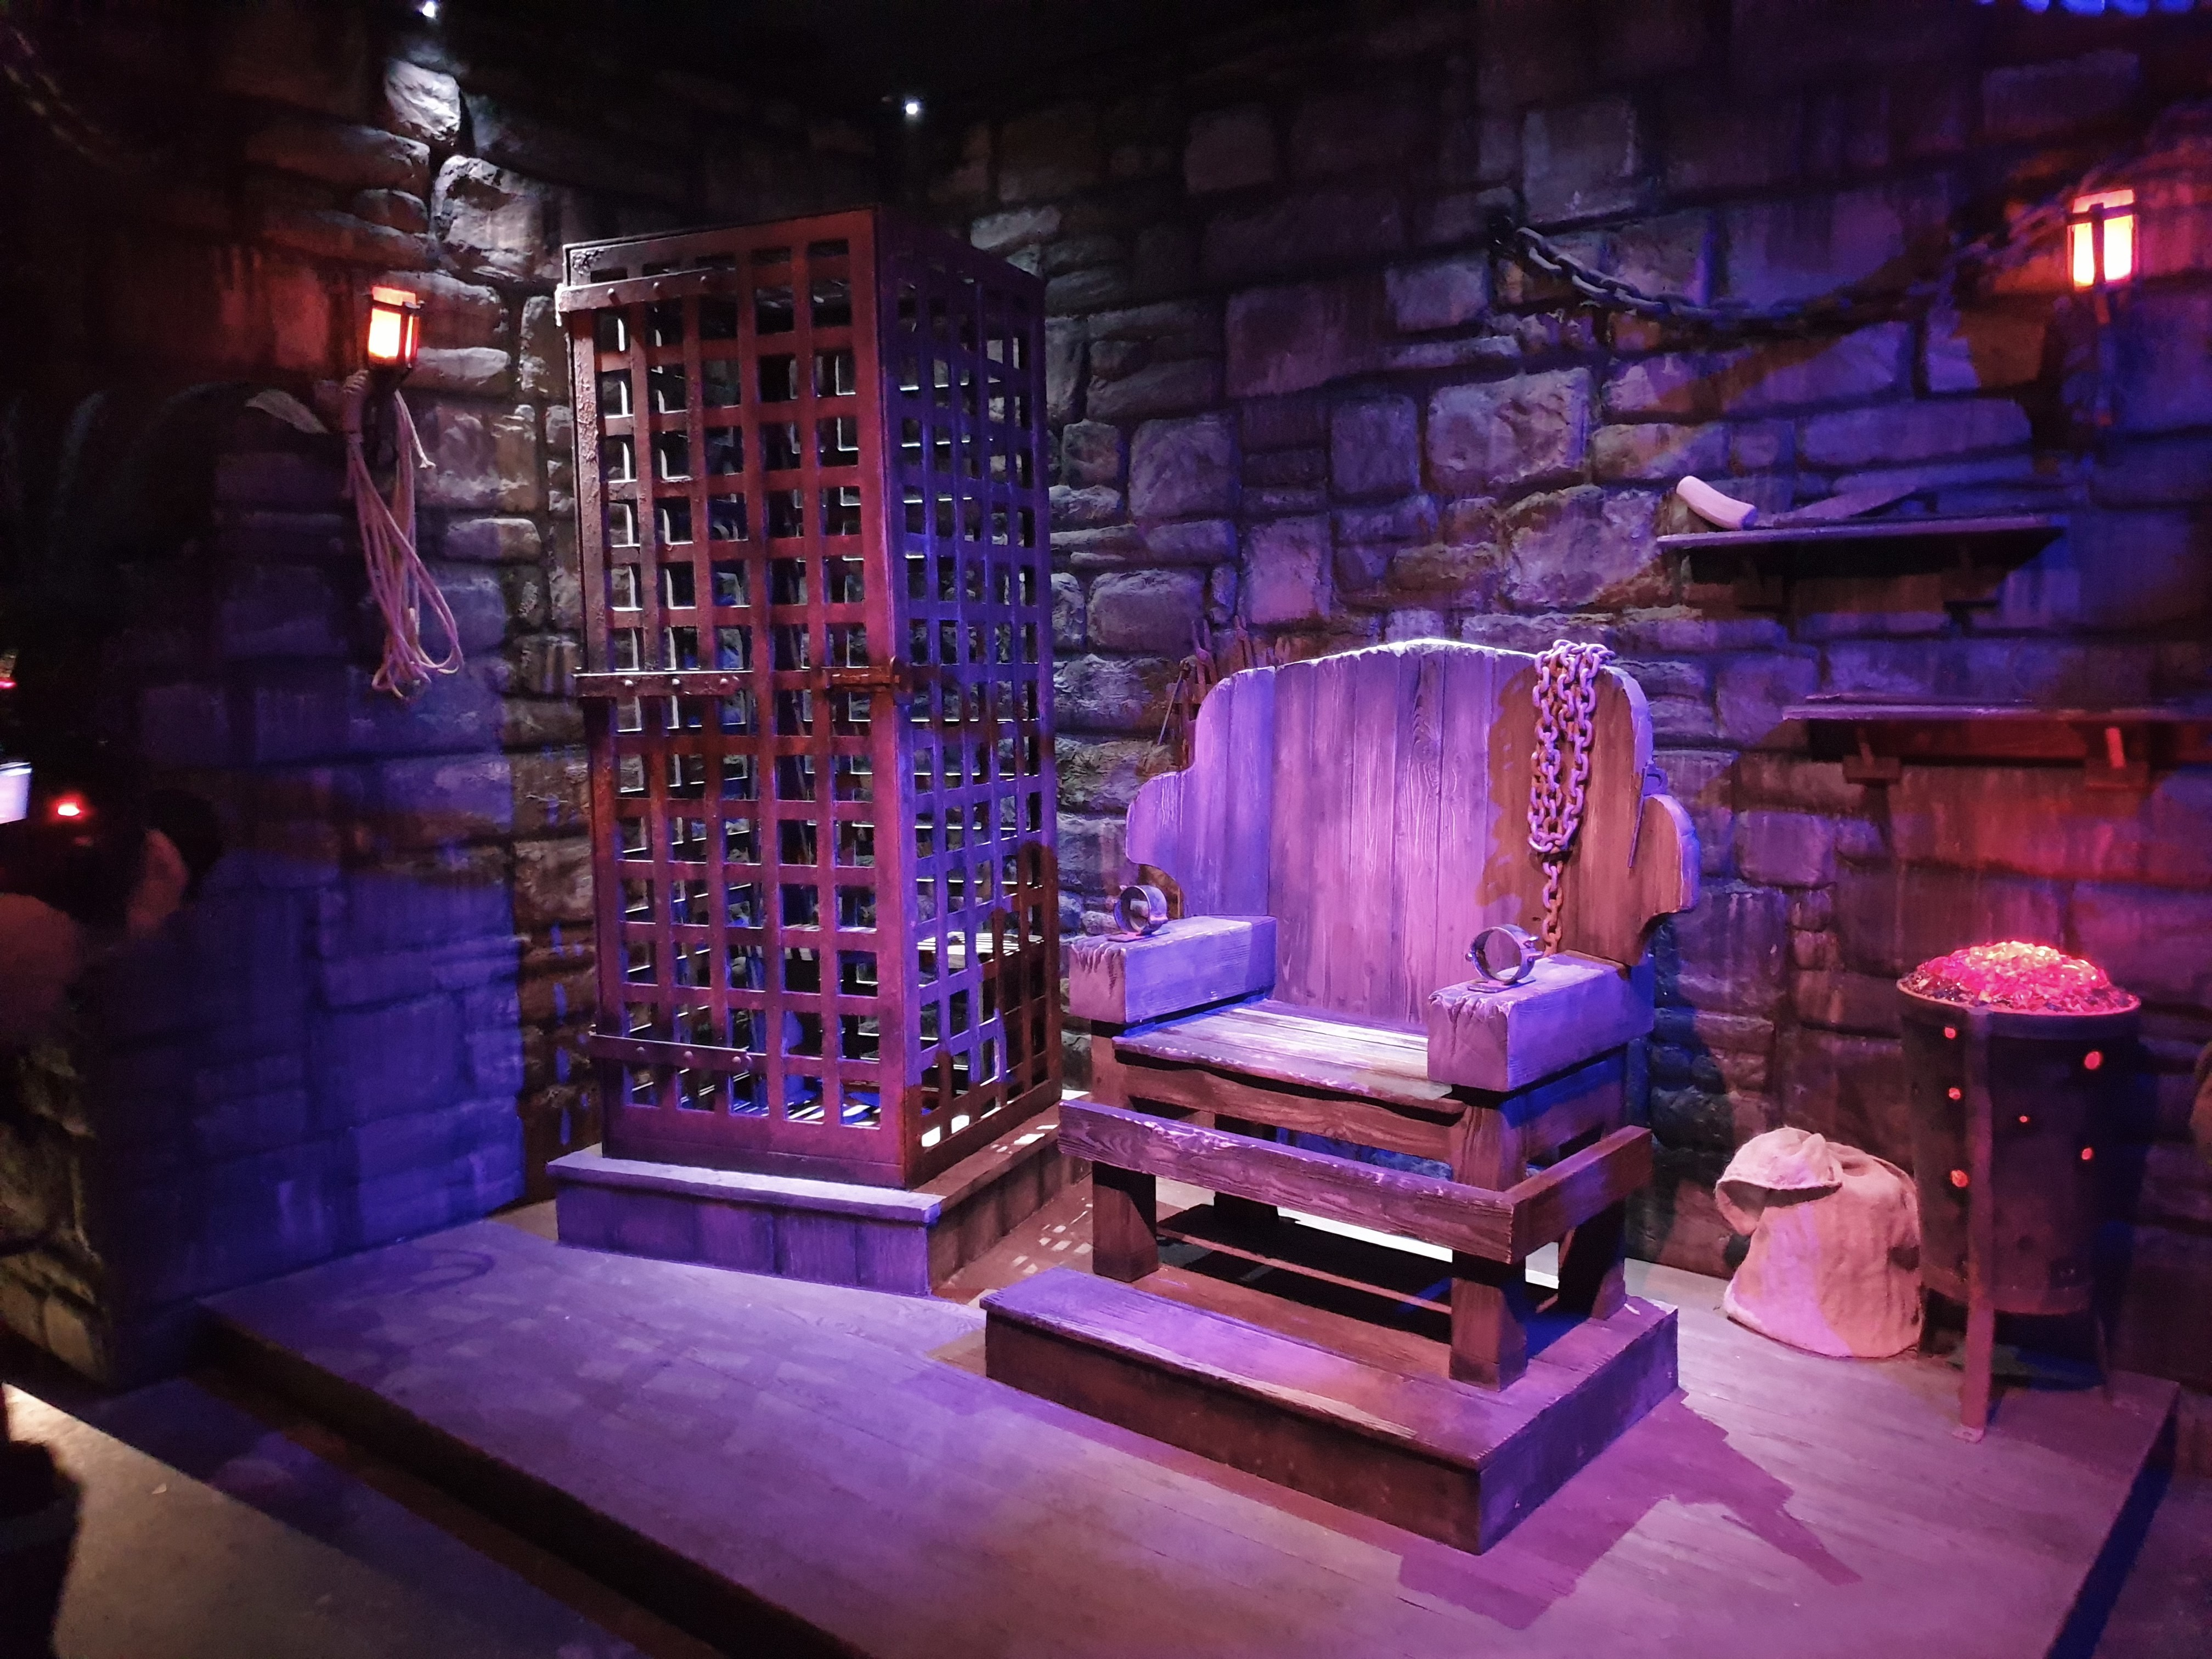 The Torturer's Scene inside the Alton Towers Dungeon